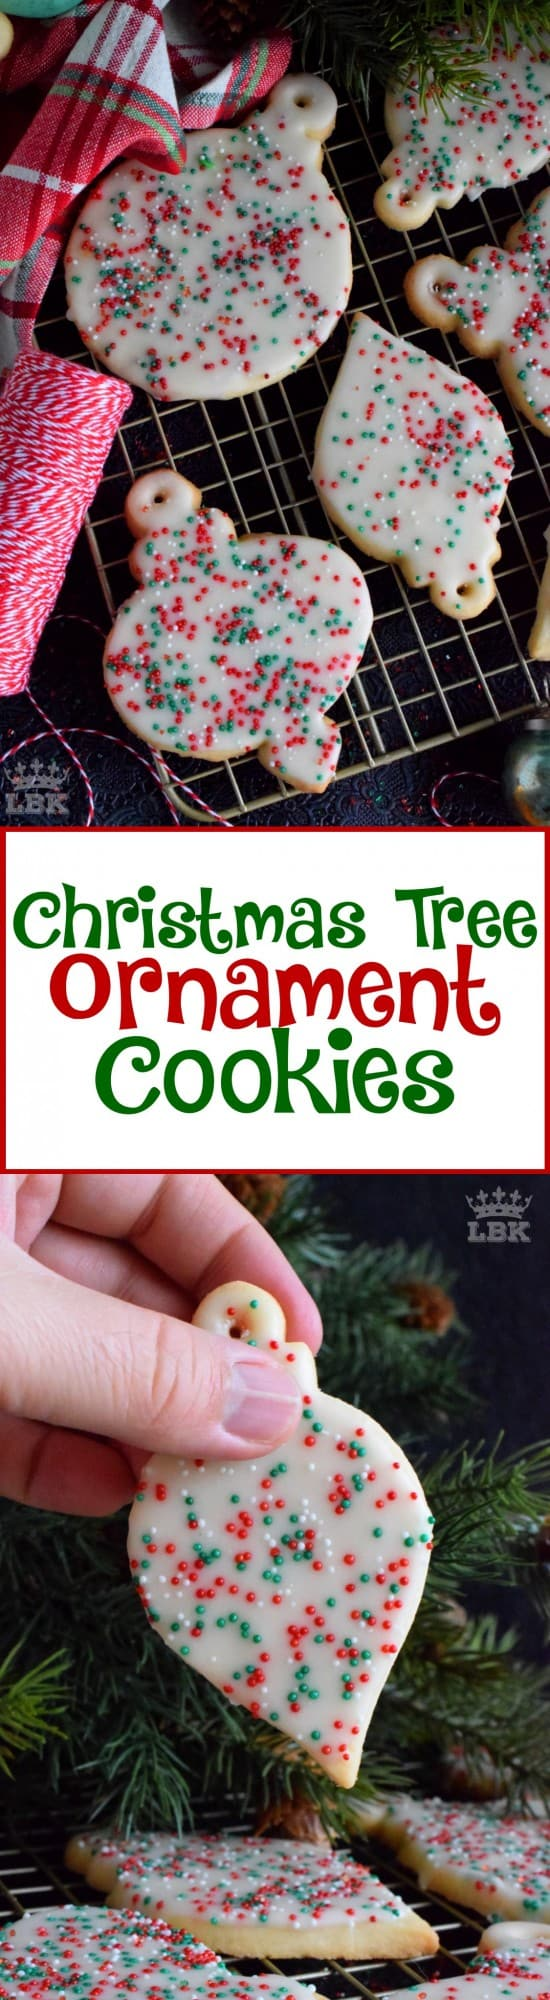 Christmas Tree Ornament Cookies - These Christmas Tree Ornament Cookies are adorably cute as a decoration on a tree, but even better packaged for friends and neighbours! #christmas #tree #ornament #homemade #baked #edible #cookies #holiday #baking